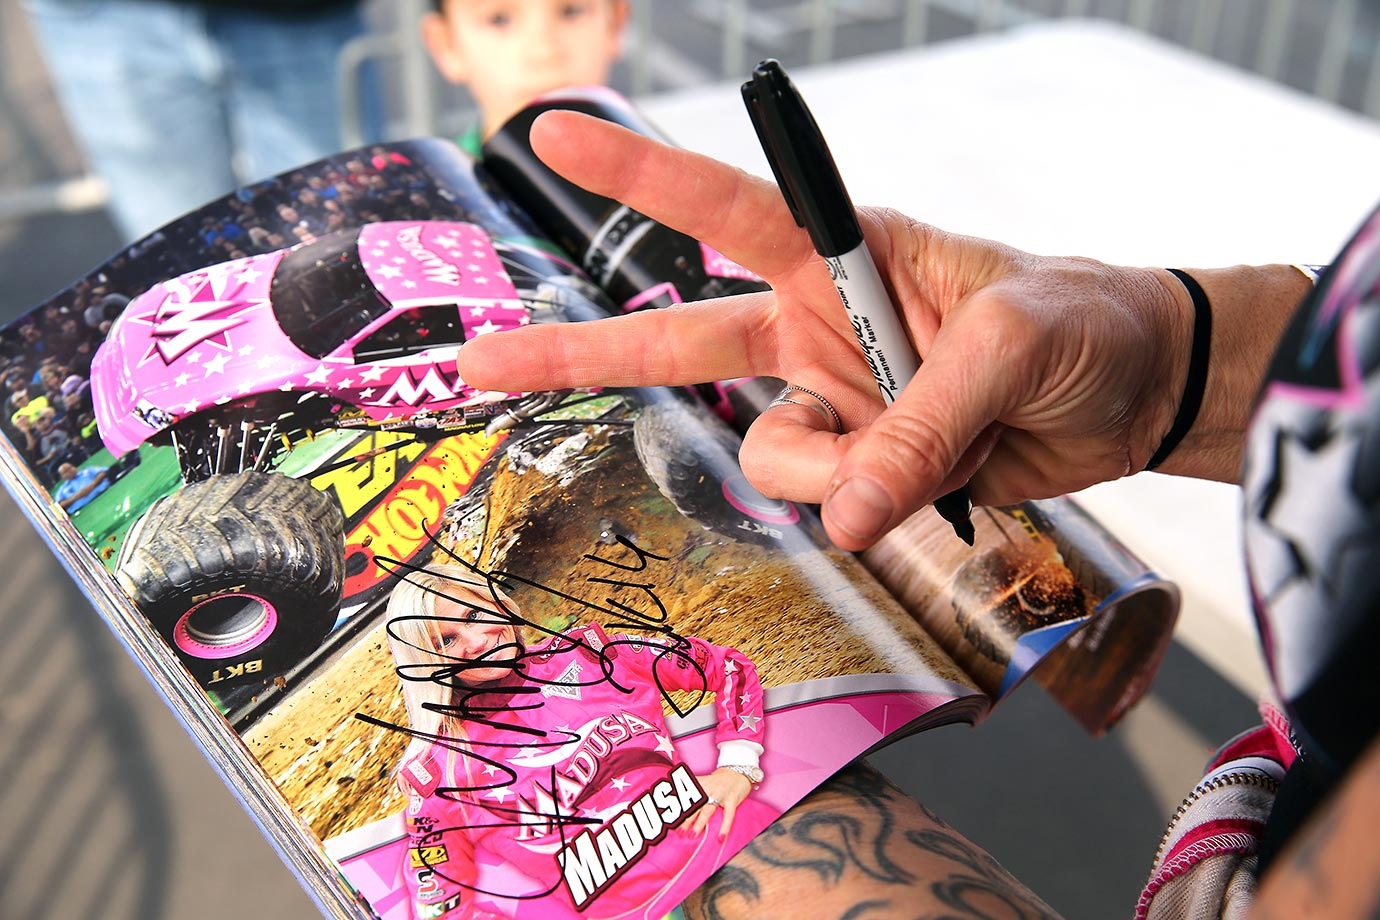 Madusa signs an autograph in the Monster Jam program for a fan before the competition.